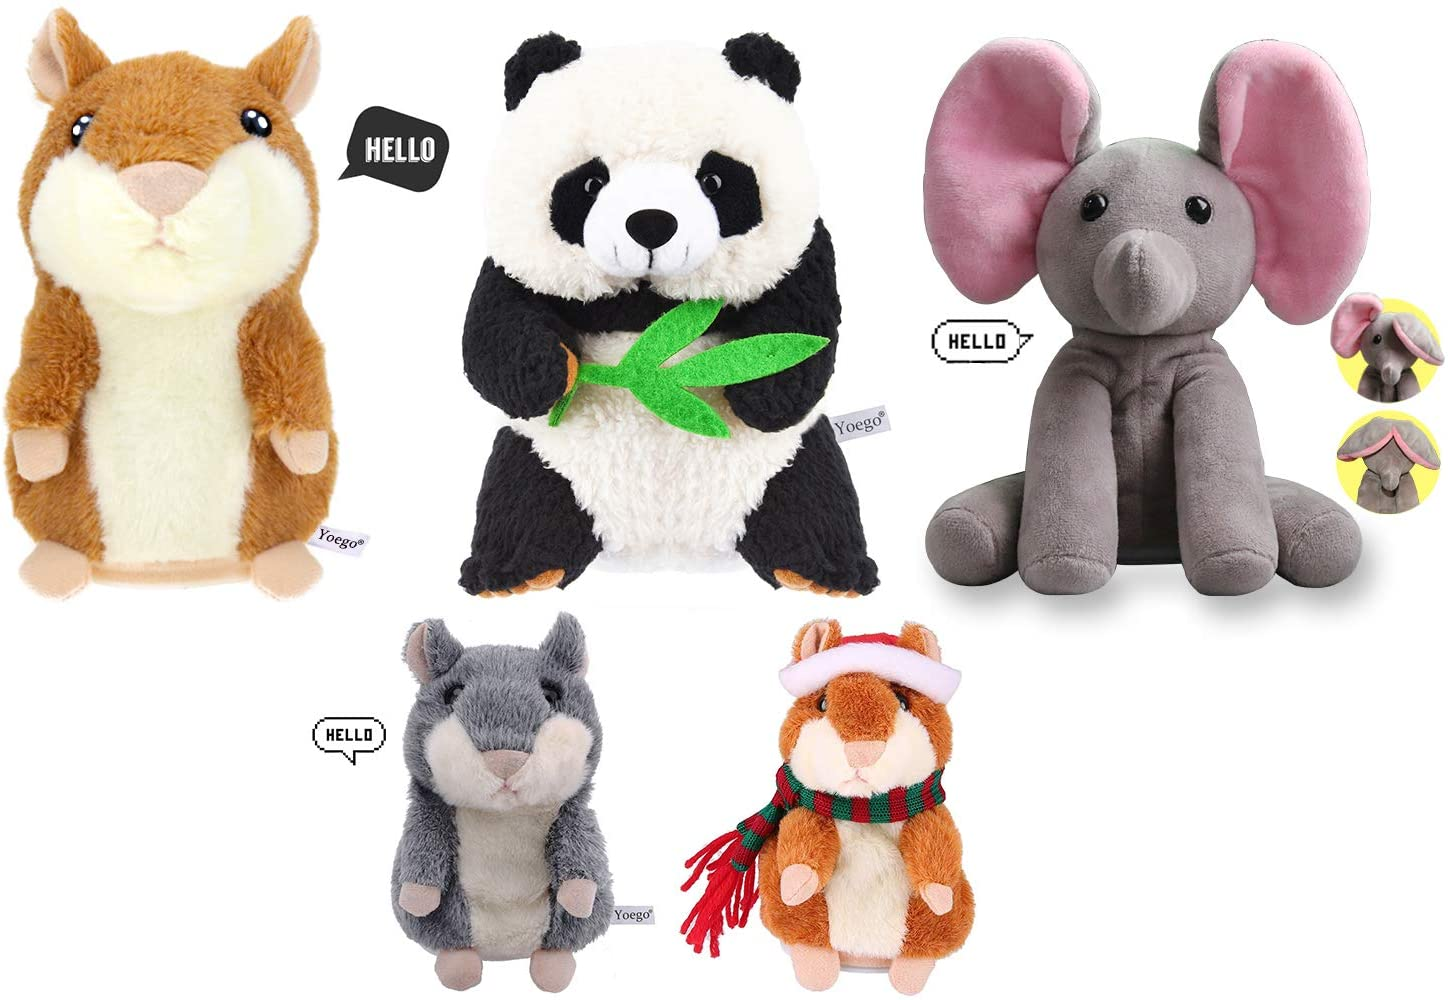 Yoego Talking Toy ,Plush Animal Cute Sound Effects with Repeats Your Said Voice, Best Buddy for Kids Gift( 5pcs)